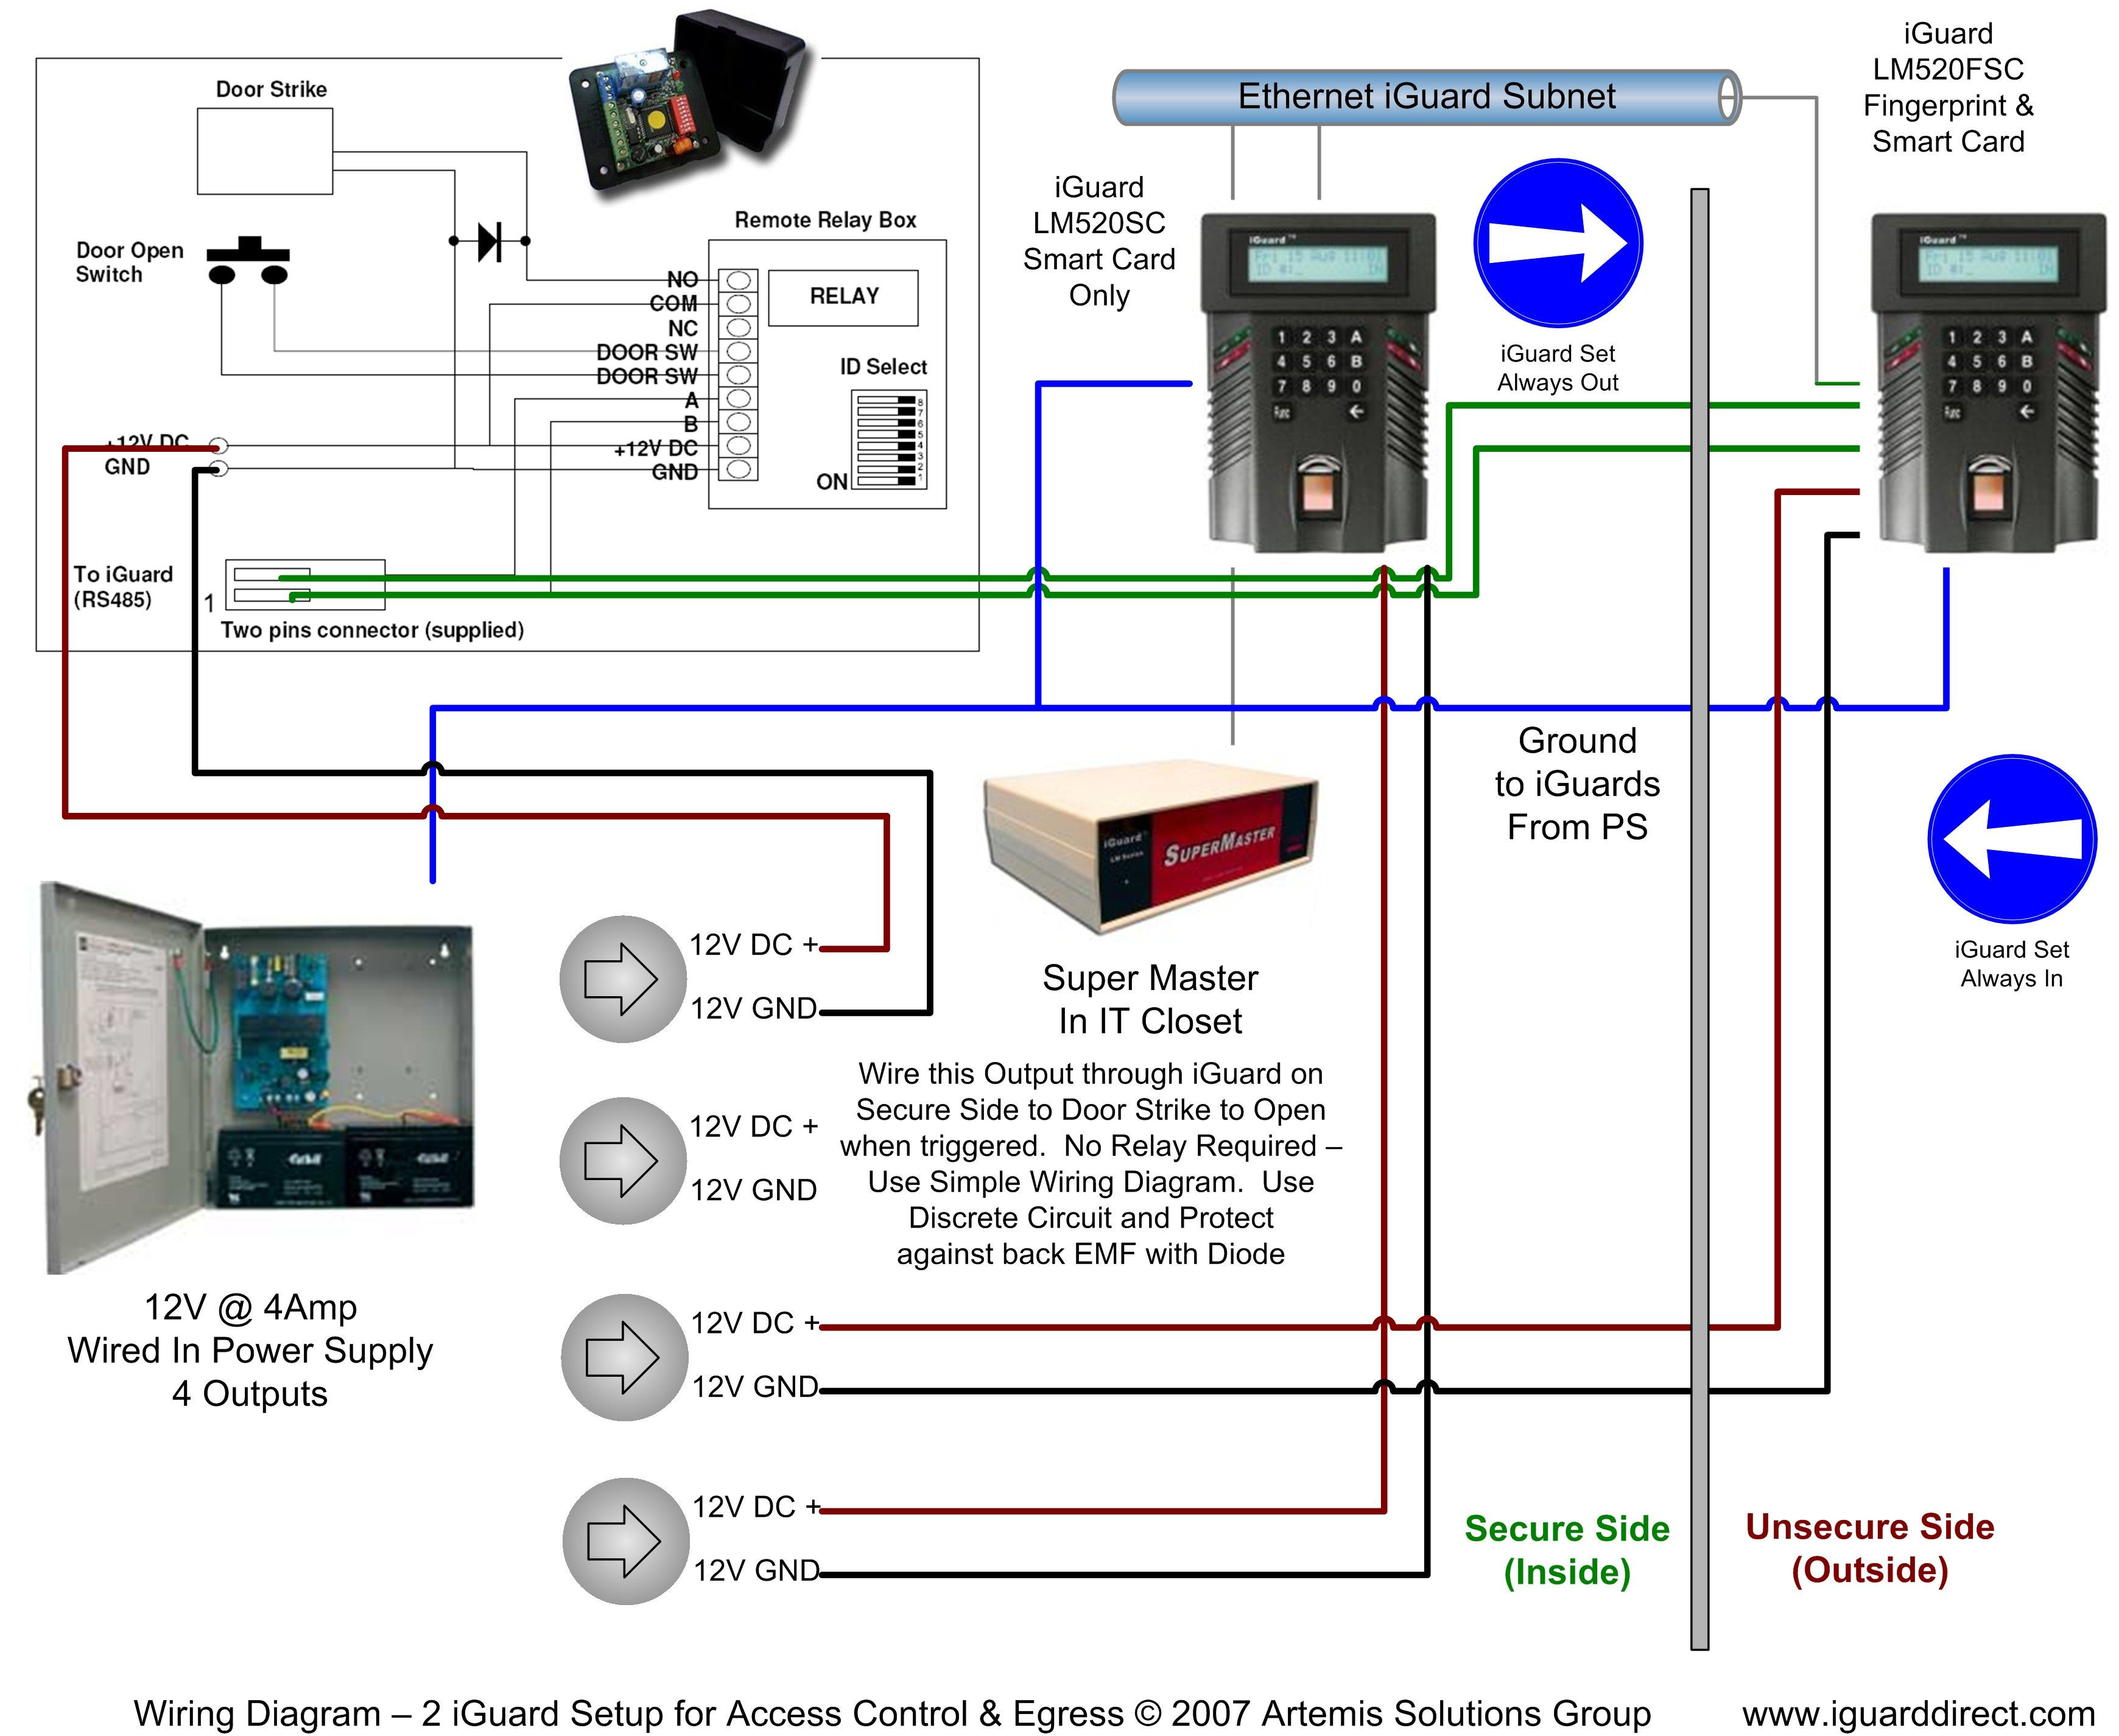 door access control system wiring diagram pdf Collection-Wiring Diagram Door Access Control System top rated Access Control Systems and Methodology 7-j